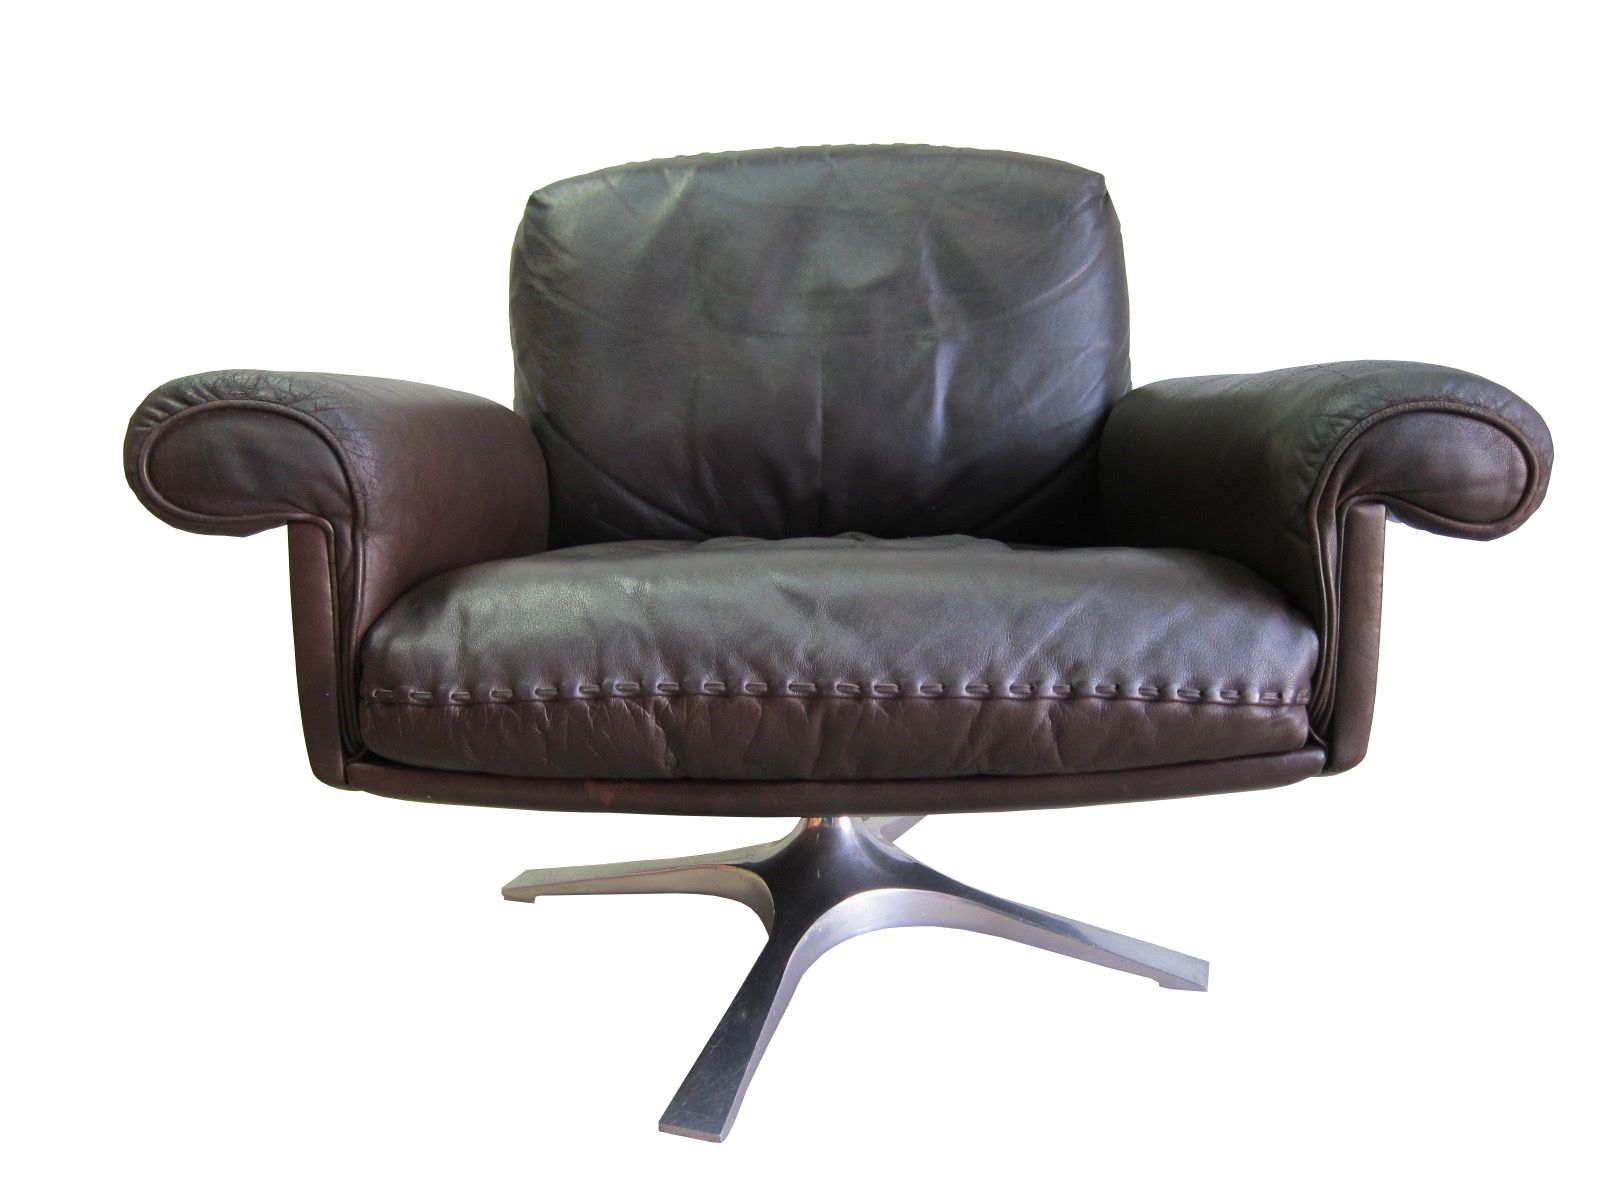 Vintage DS 31 Swivel Lounge Chair from de Sede for sale at Pamono